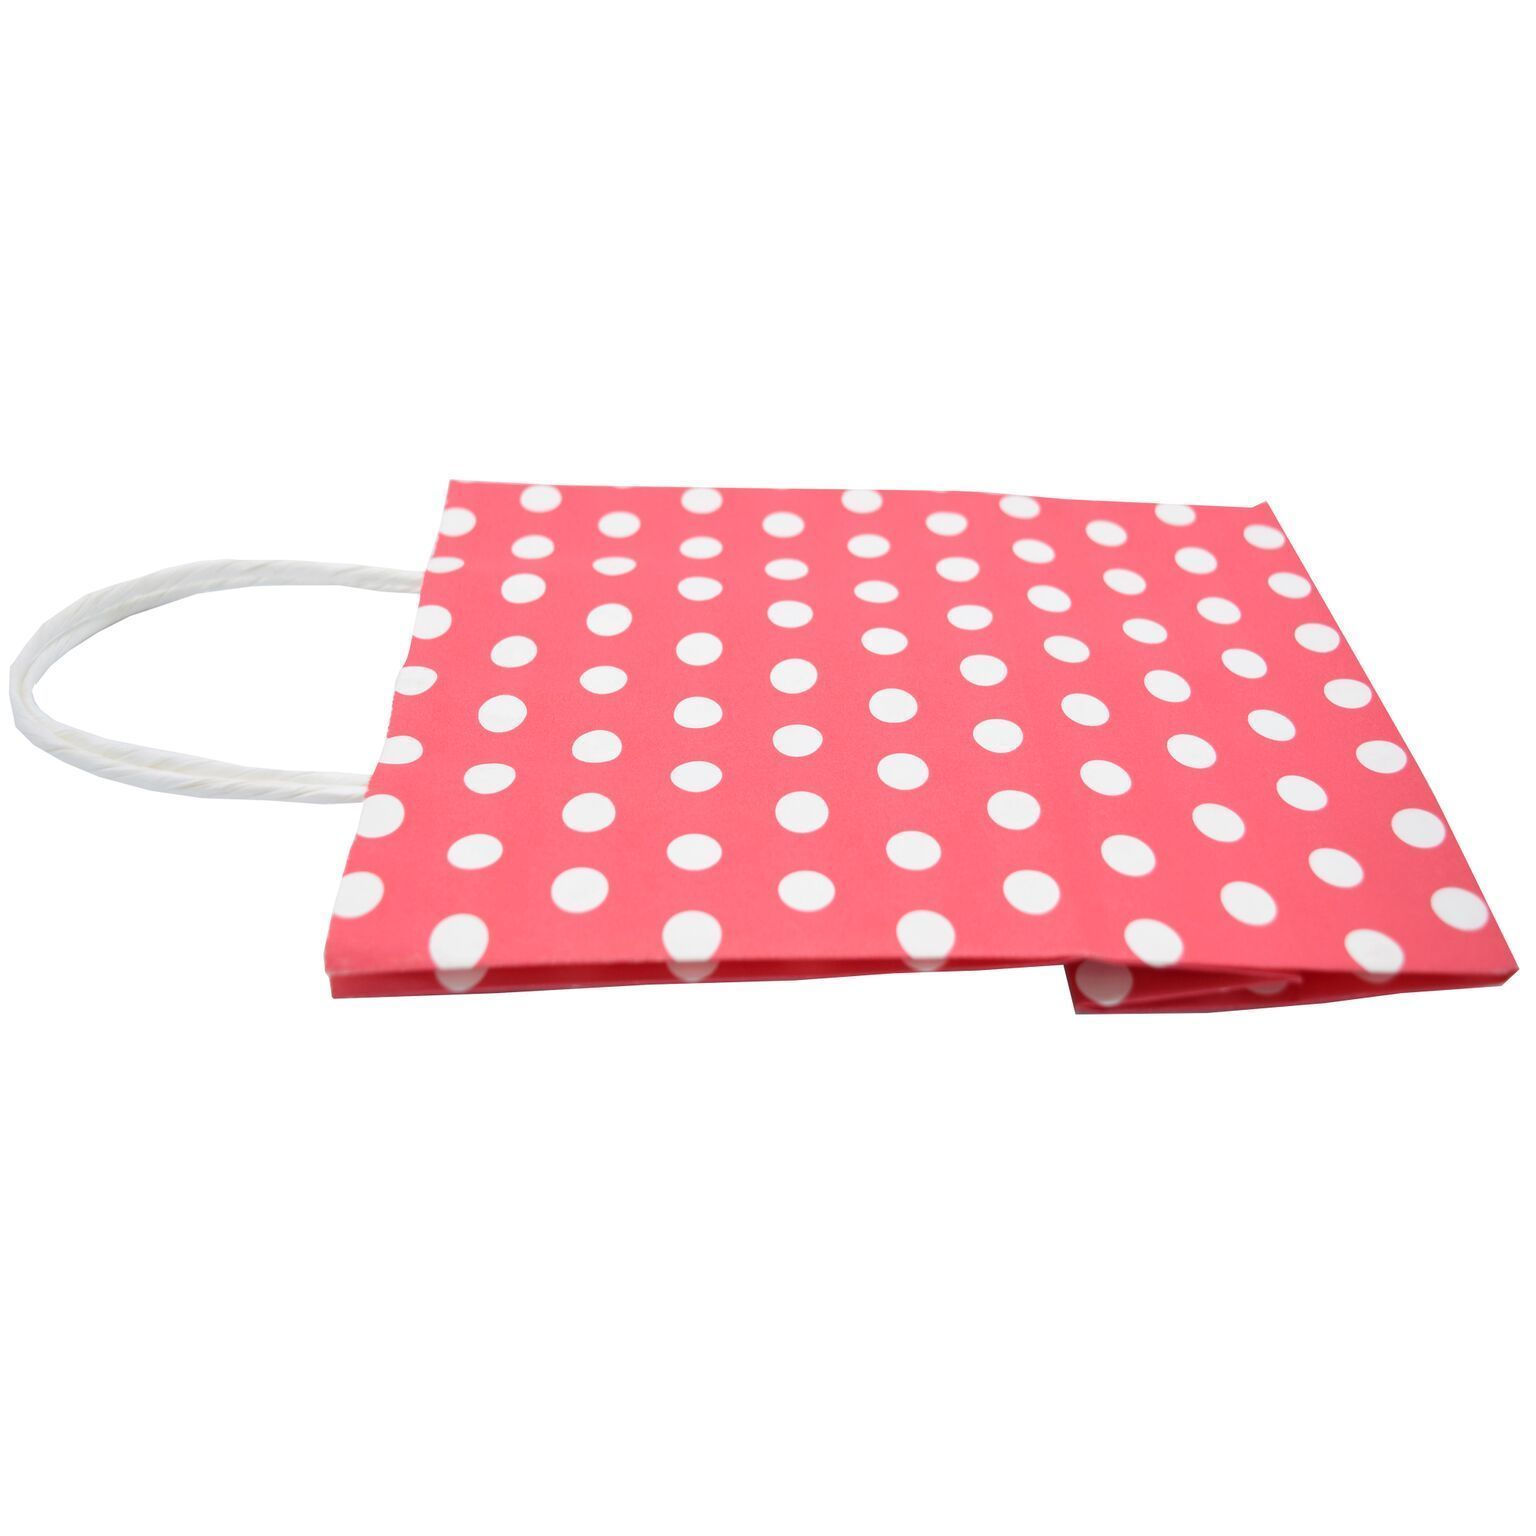 8.3x4.3x10.6in One Pack of 12 Polka Dot Design Red Gift Bags 21x11x27cm